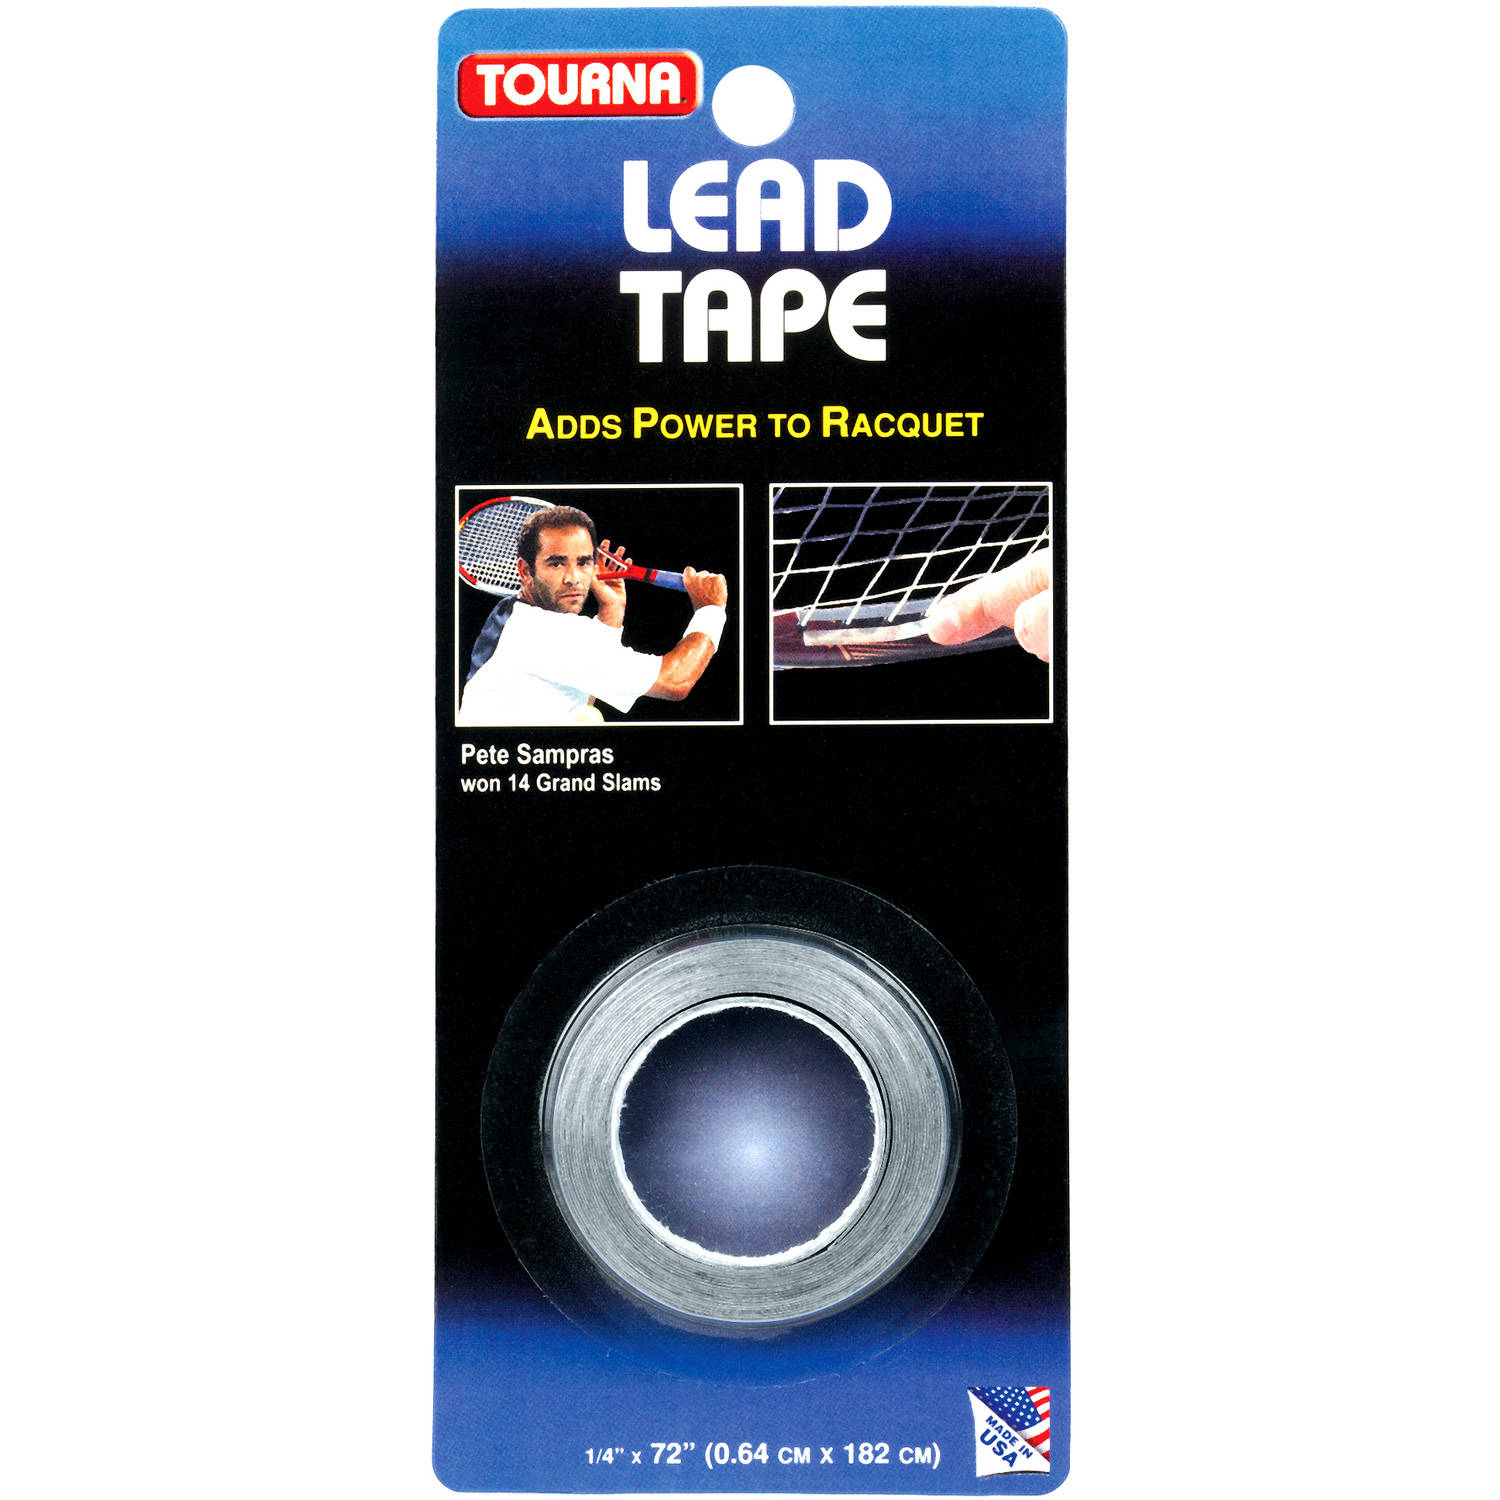 """Tourna Lead Tape (1 4"""" X 72"""") For Tennis, Golf, Racquetball and Squash by Unique Sports"""